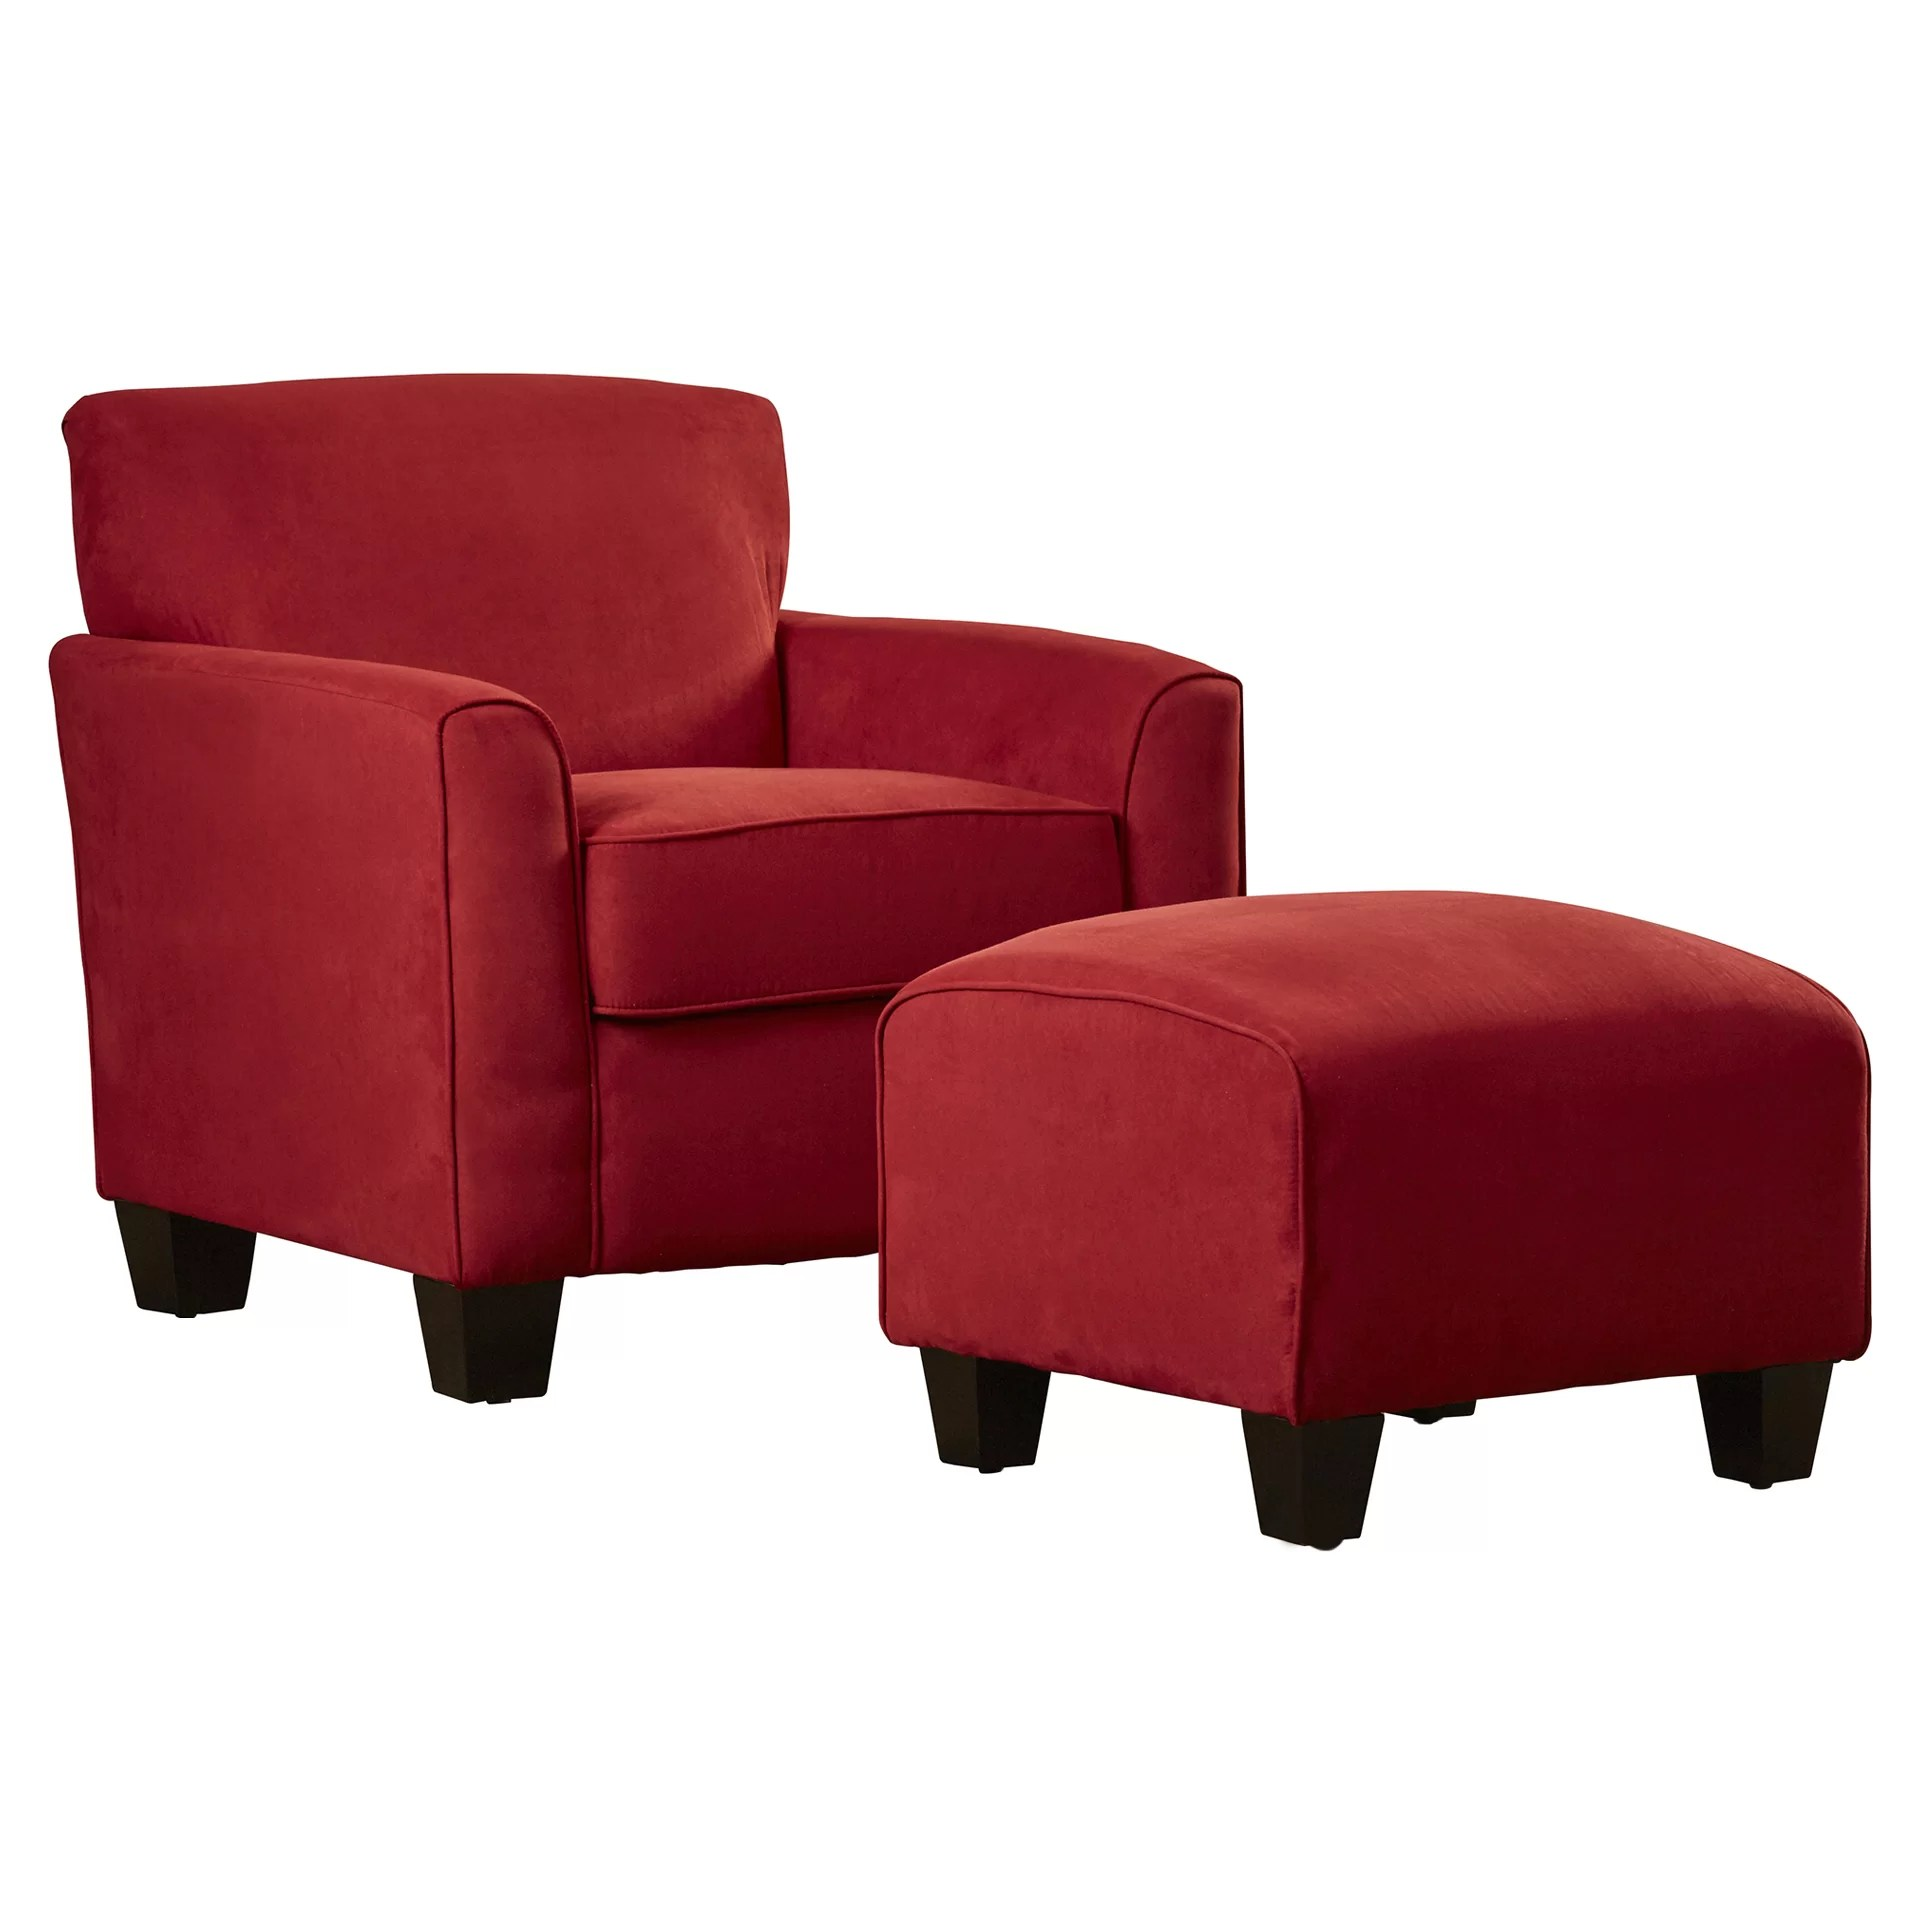 Armed Accent Chairs Red Barrel Studio Great Northern Arm Chair And Ottoman